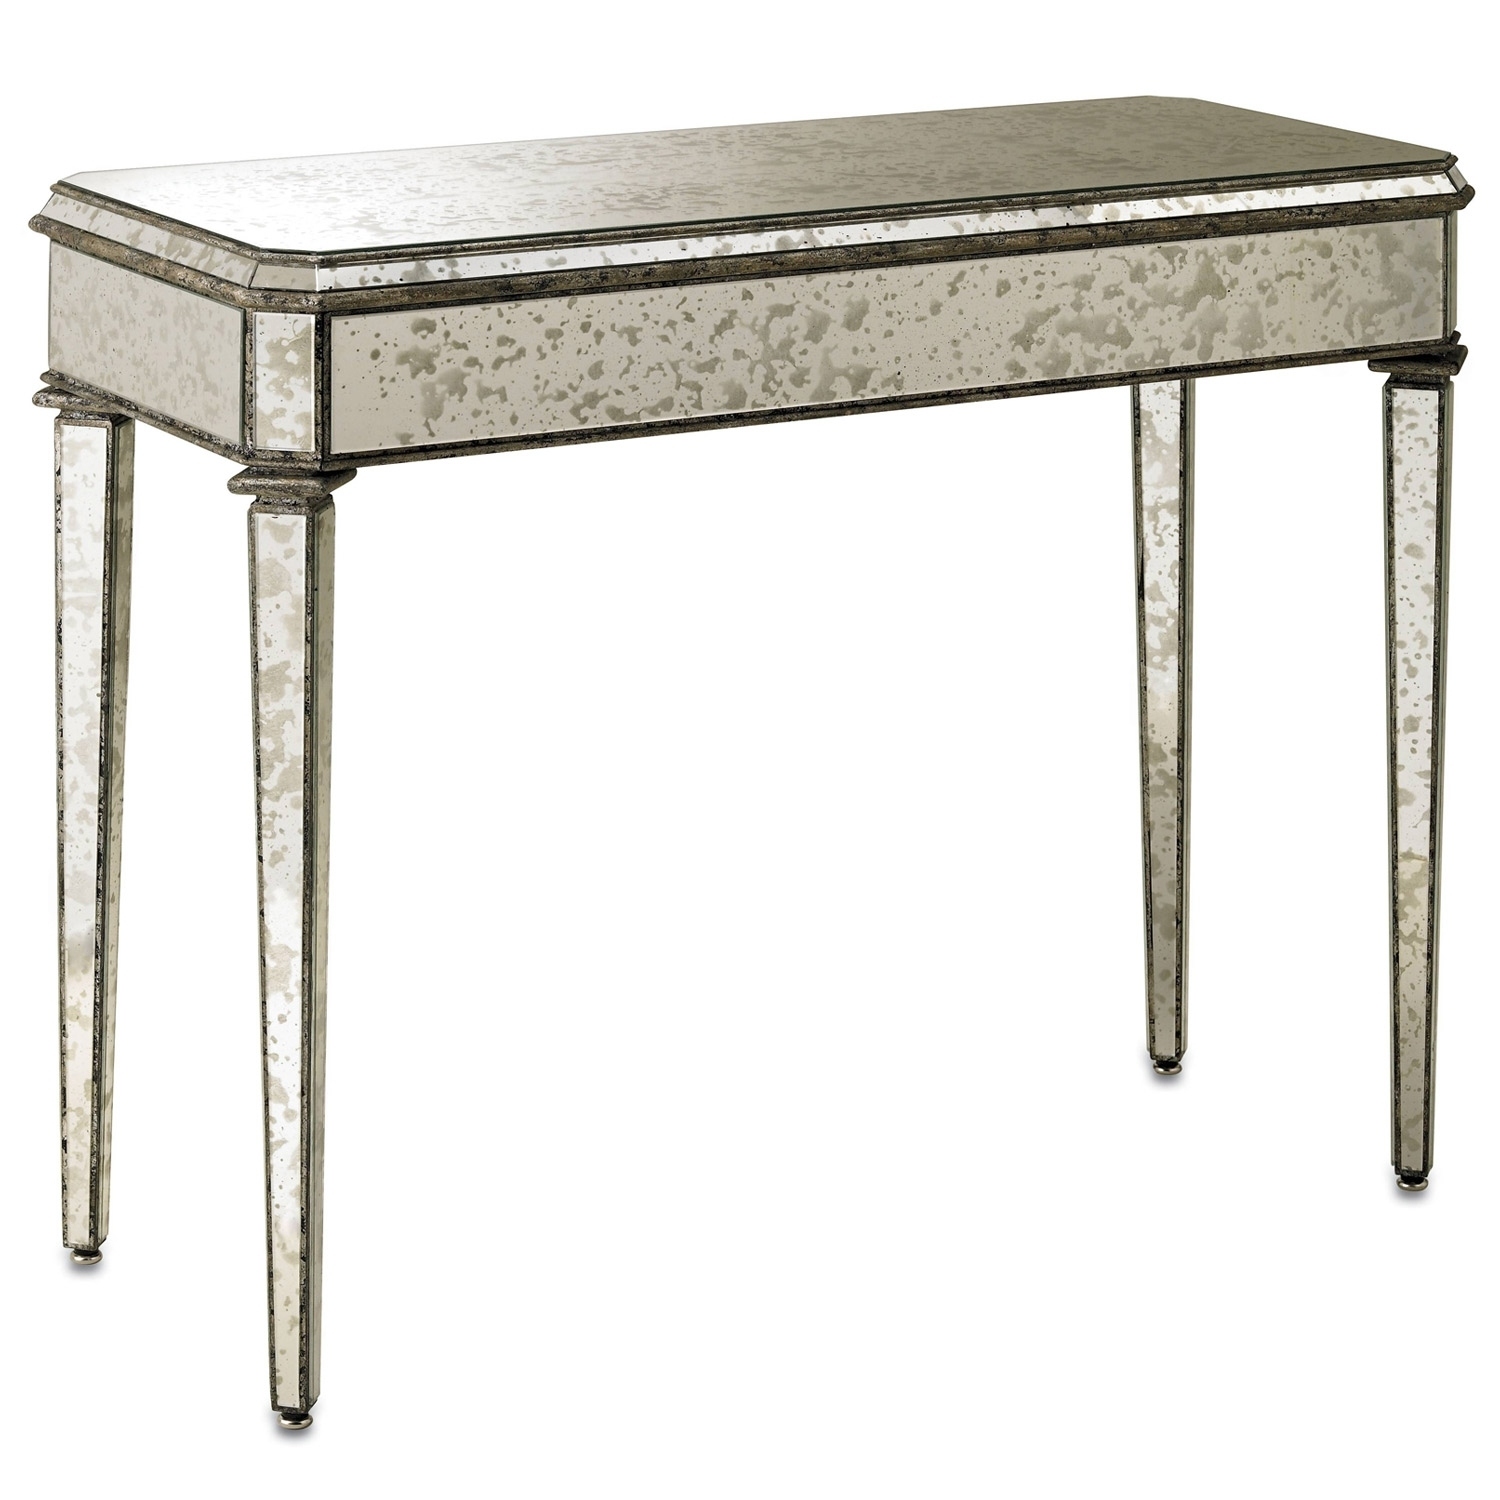 Antique And Vintage Old Mirrored Entry Console Table For Rustic inside Antiqued Art Deco Coffee Tables (Image 3 of 30)